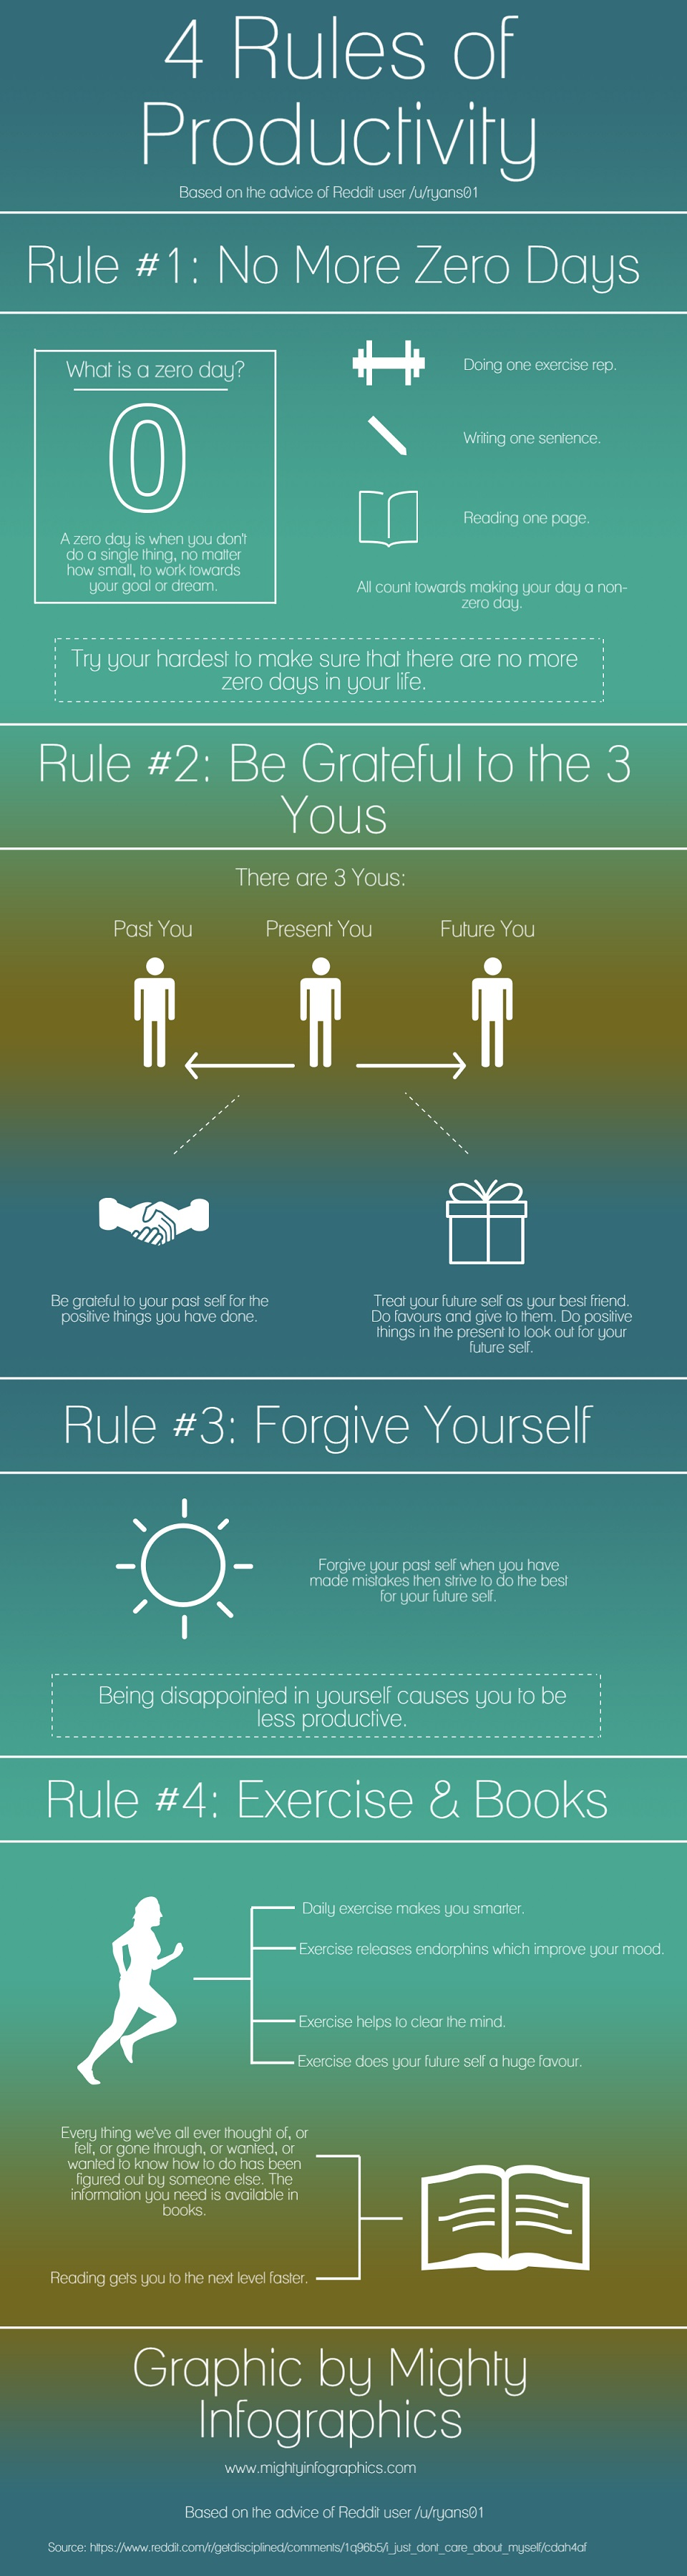 4 Rules of Productivity